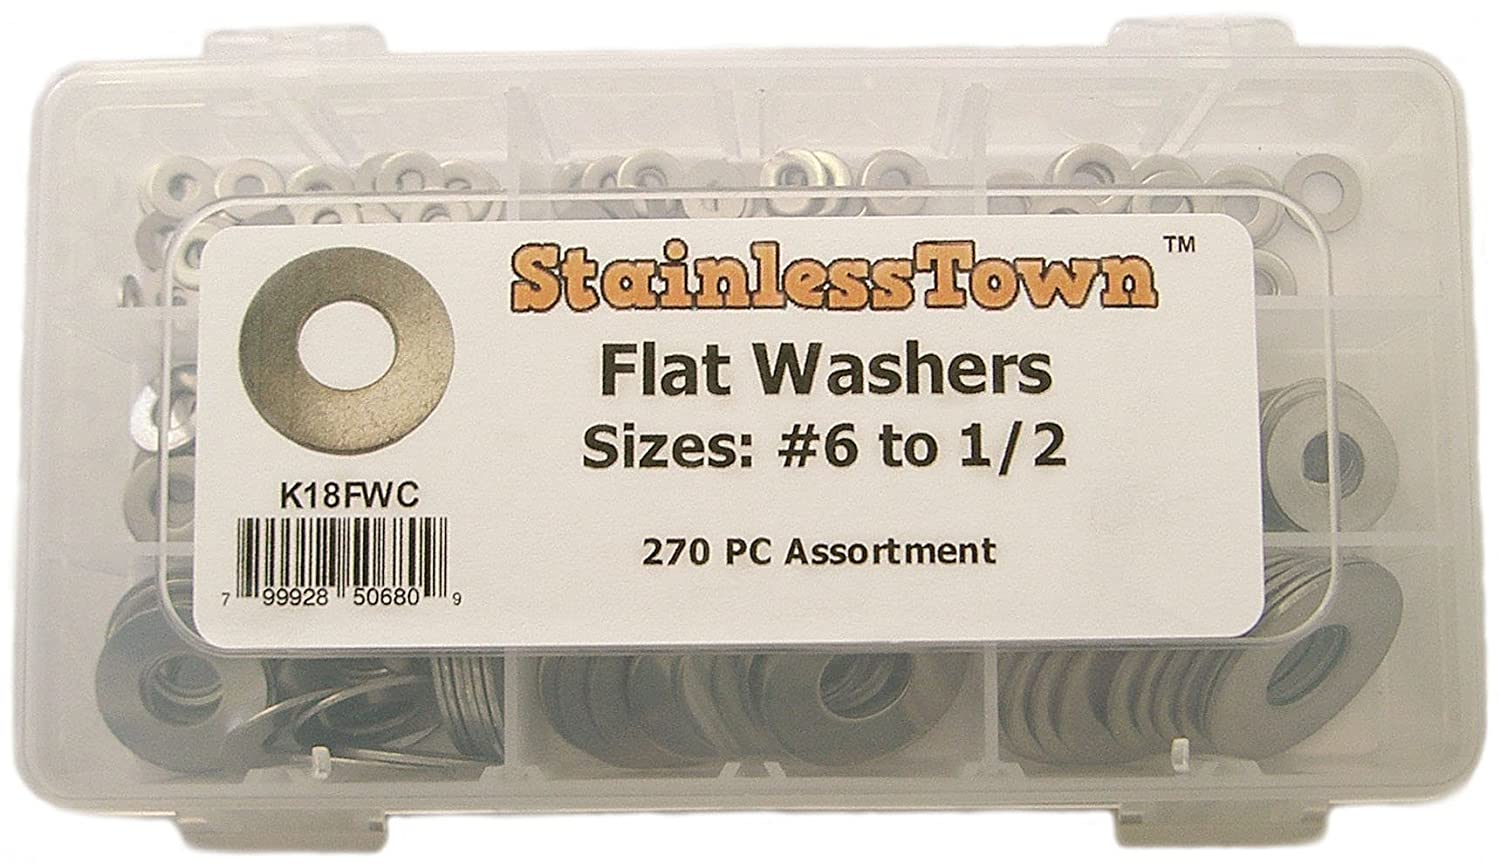 Stainlesstown K18FWC Stainless Steel Flat Washer Assortment Kit